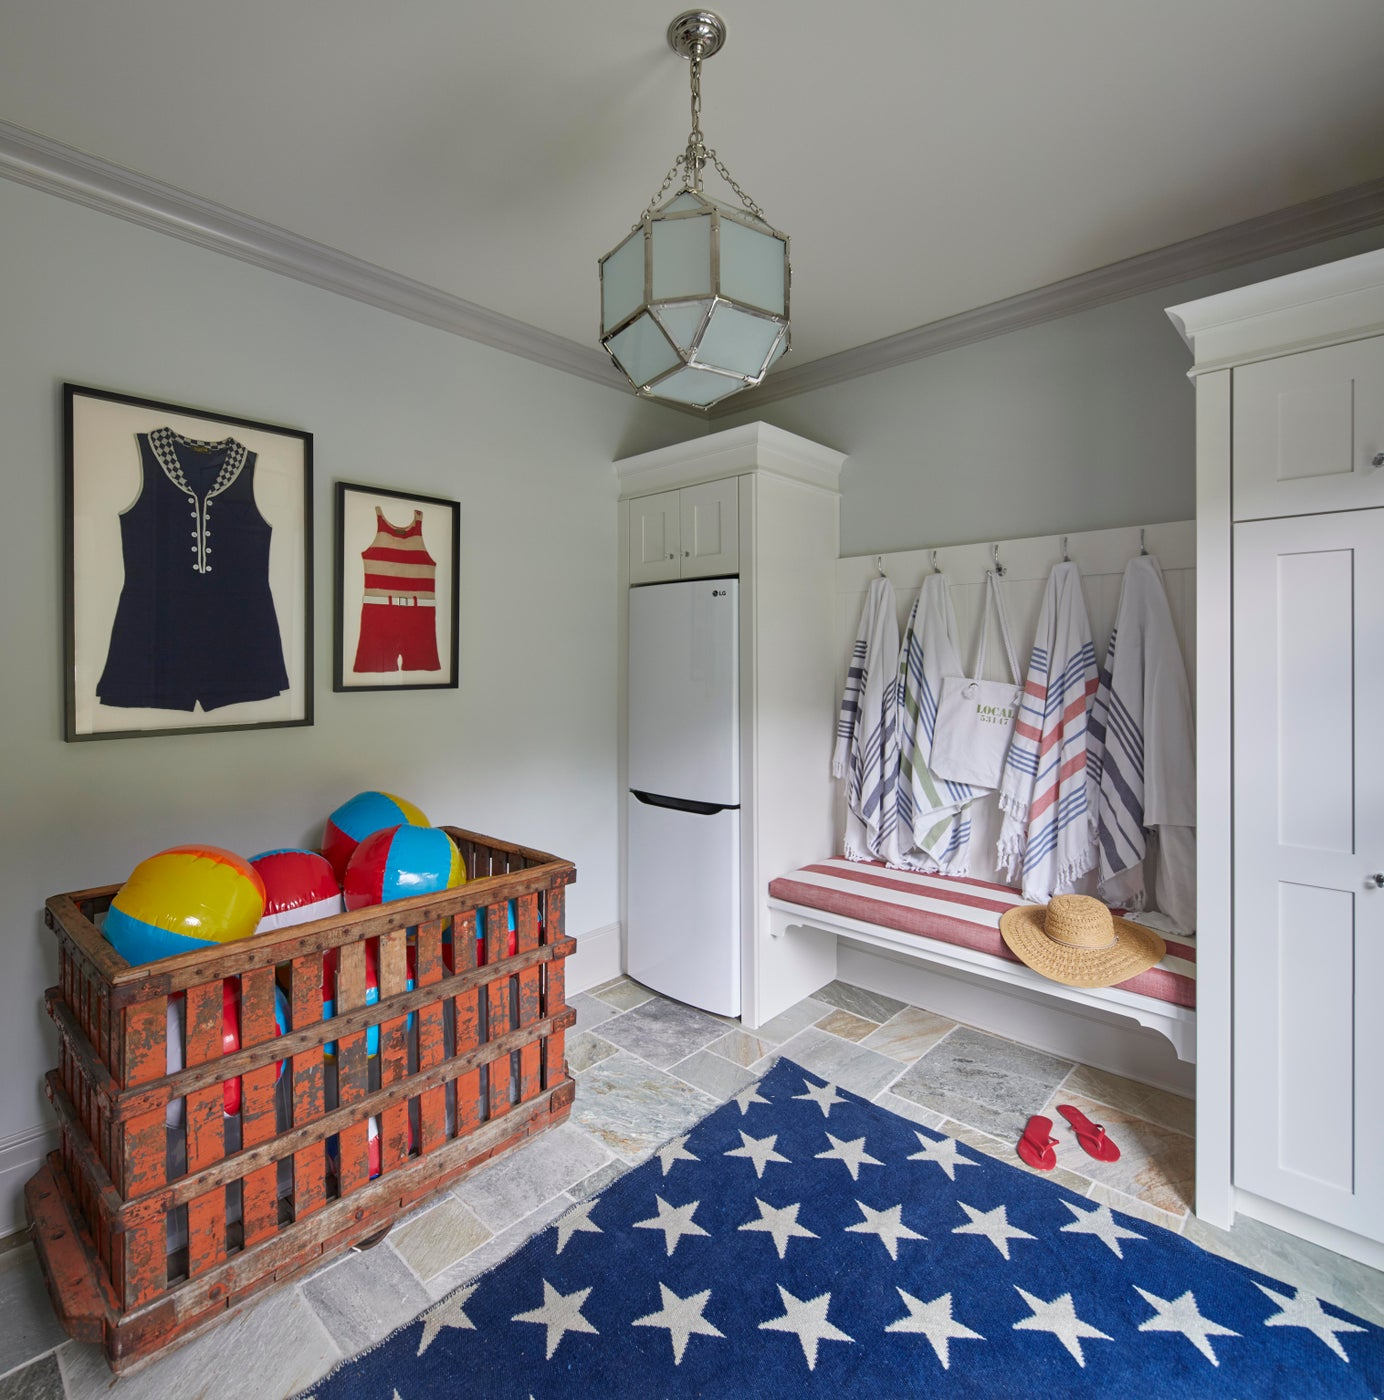 Red, white & blue Mini-Cabana with orange industrial cart, vintage bathing suits